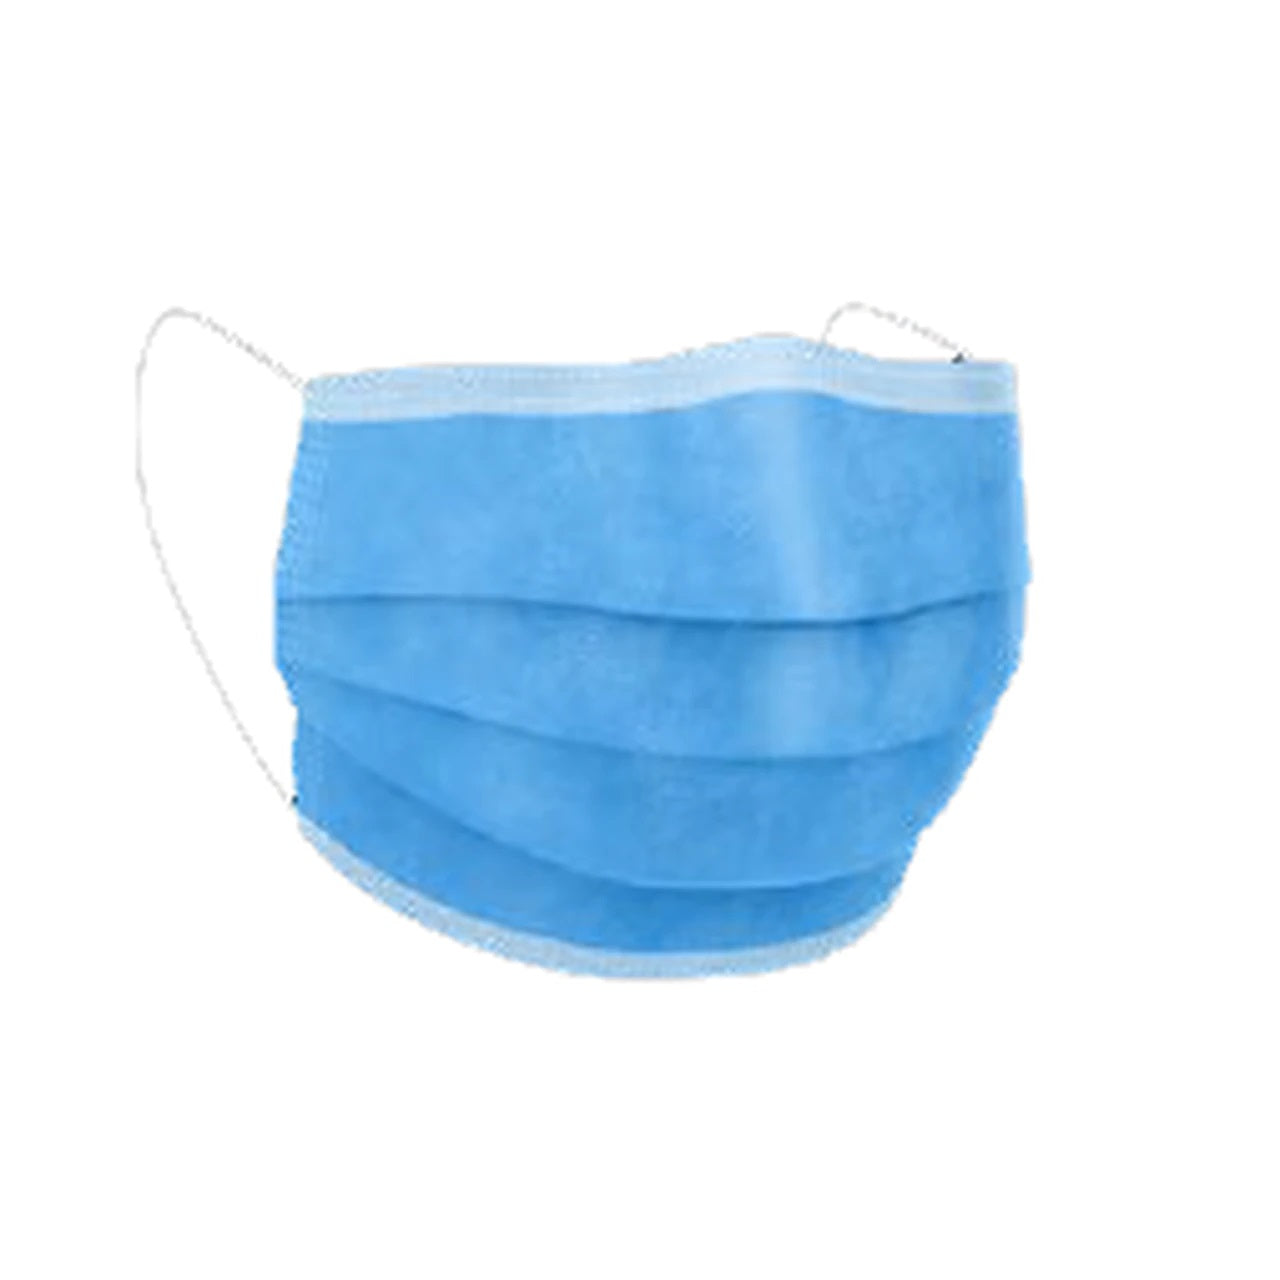 Type IIR 3-Ply Masks - 50pk